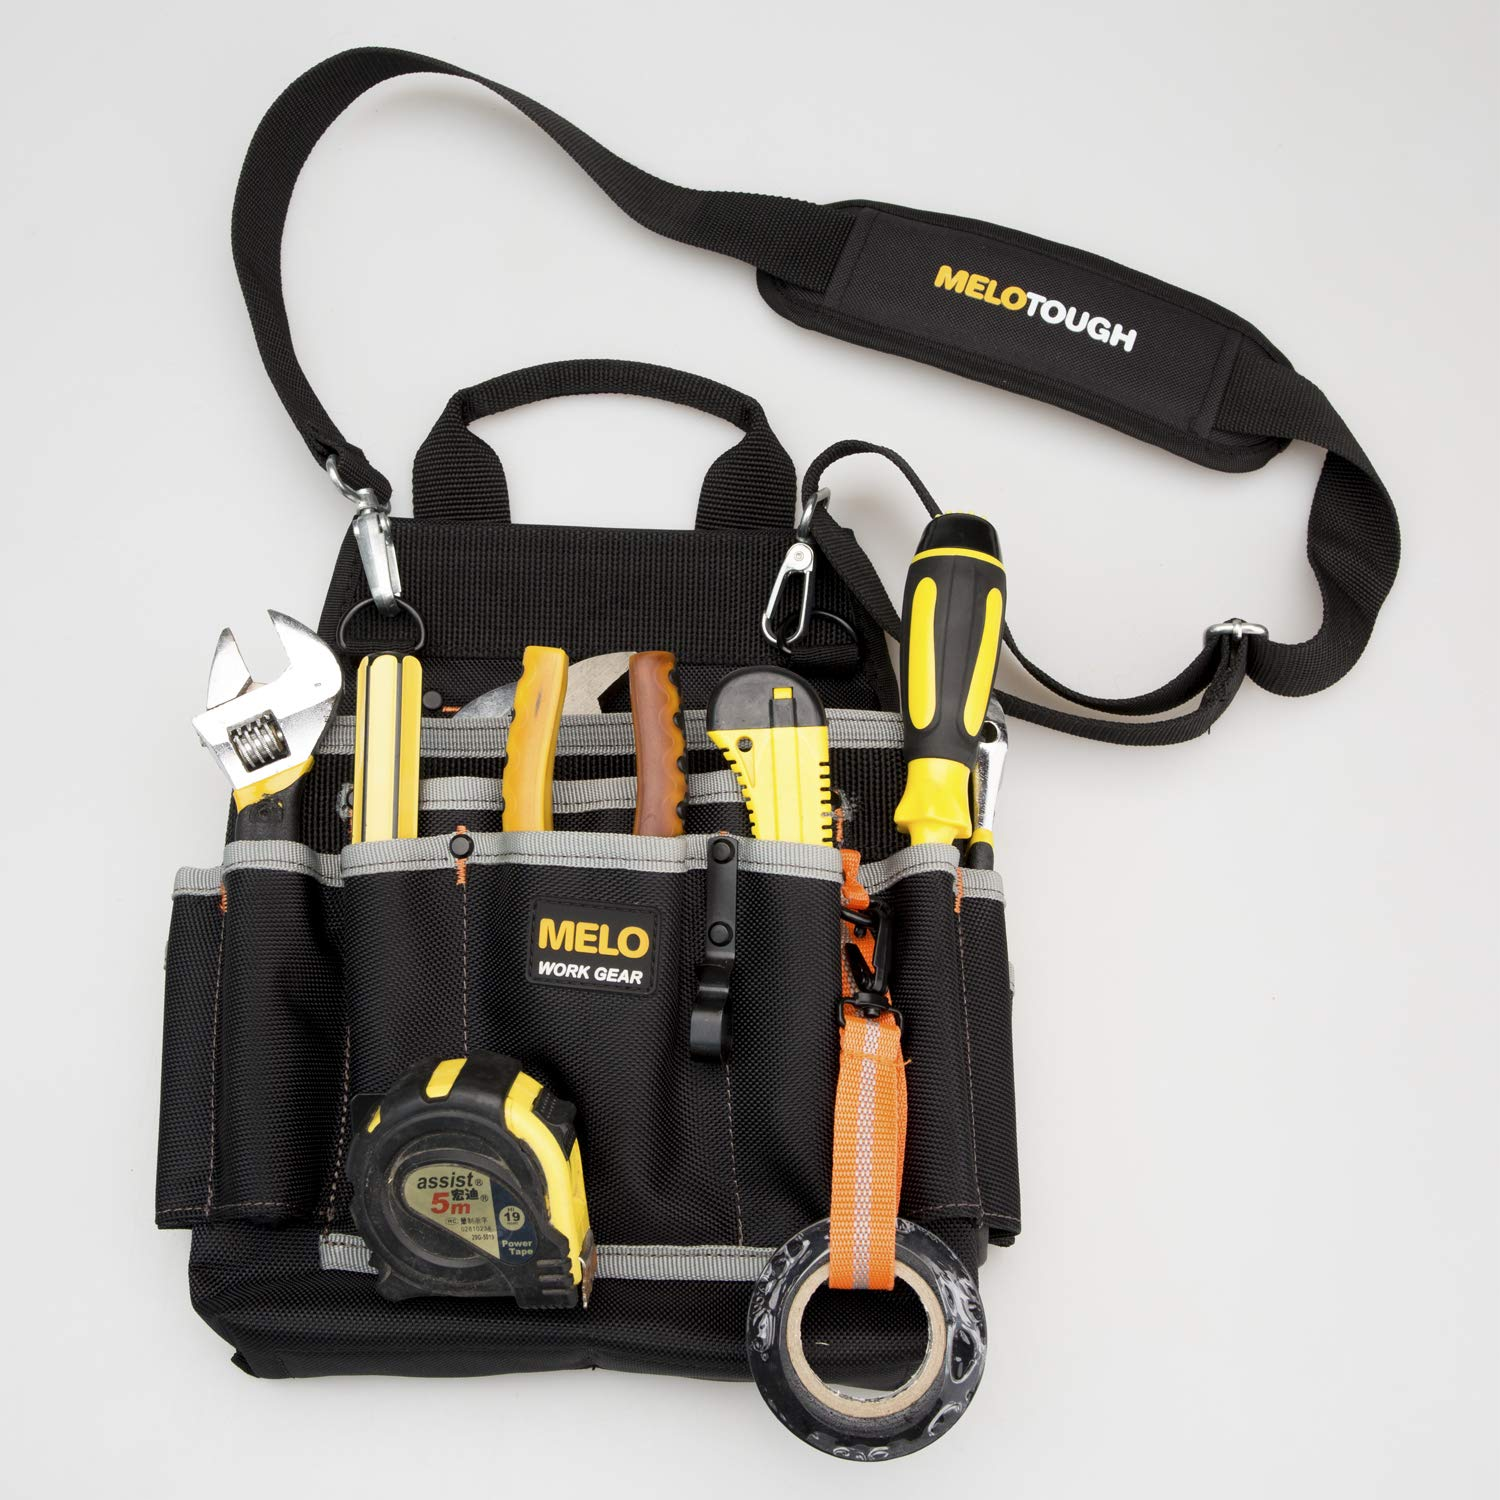 Melo Tough Professional Tool Pouch Shoulder Tool Carrier with Multiple Pockets, Tool Organizer for Technician/maintenance and Electrician's Tools by Melo Tough